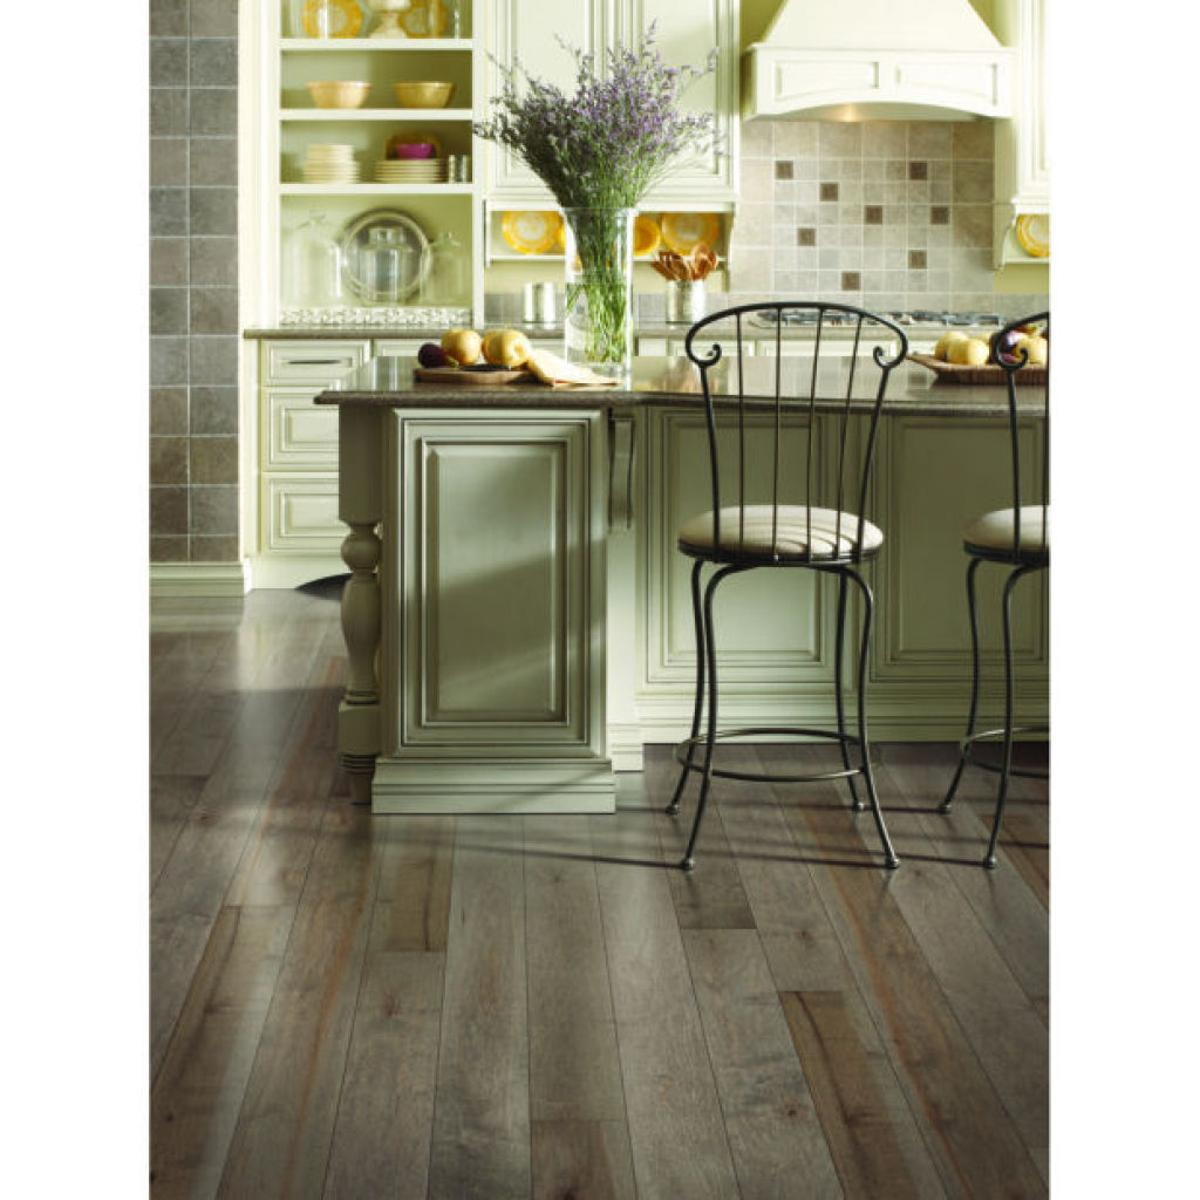 Can I Lay Wood Over An Old Tile Floor Home Life Health